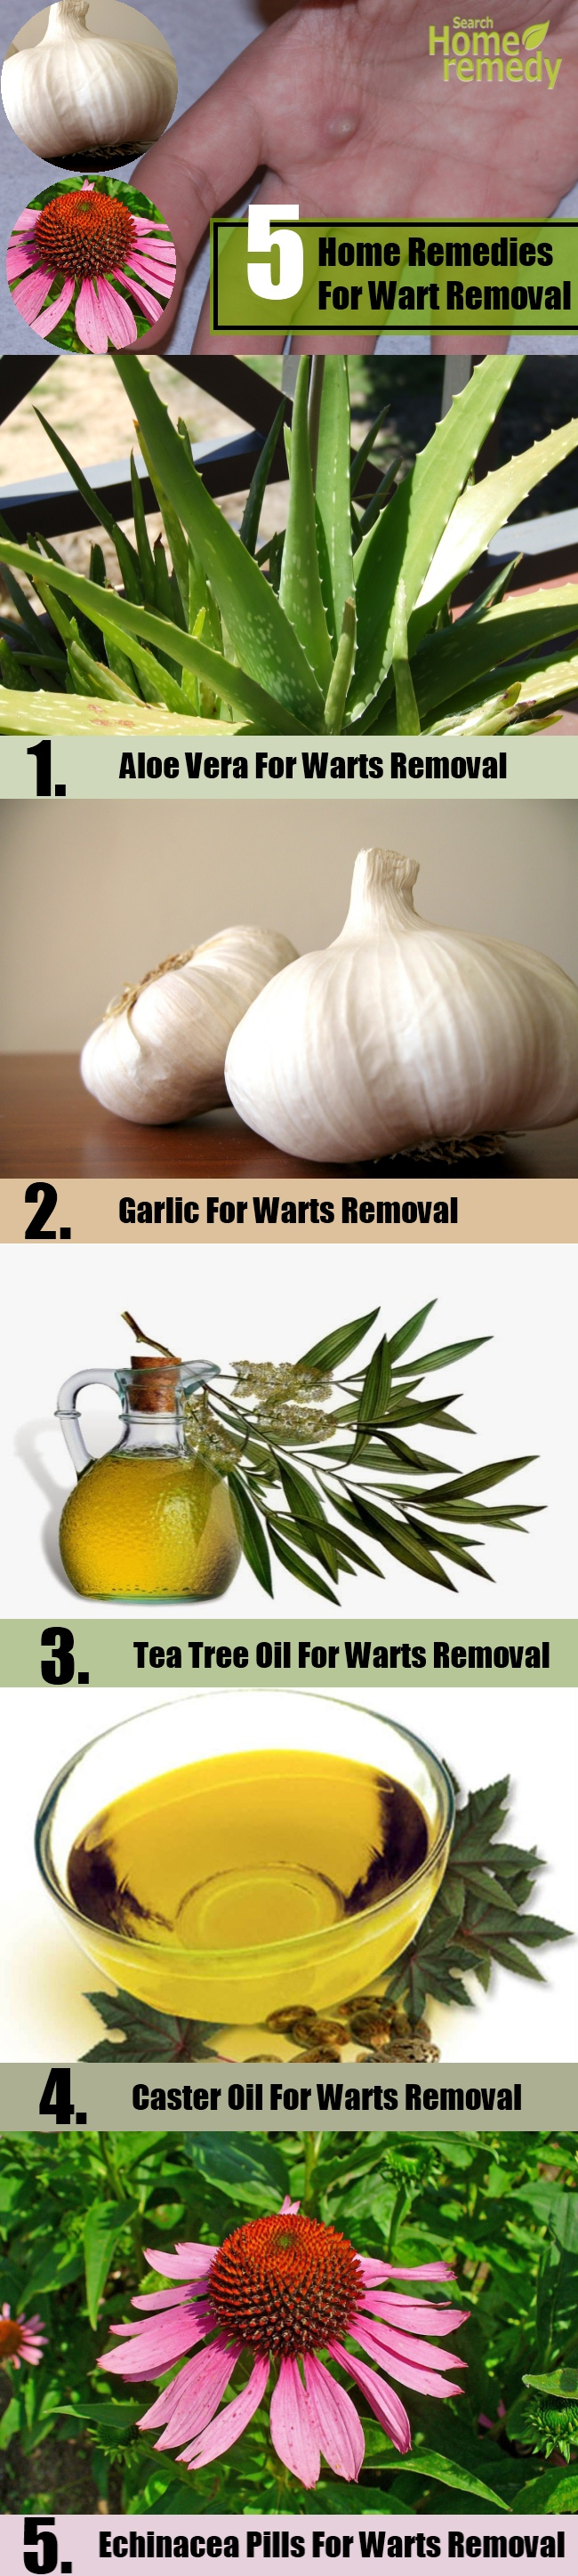 5 Home Remedies For Wart Removal